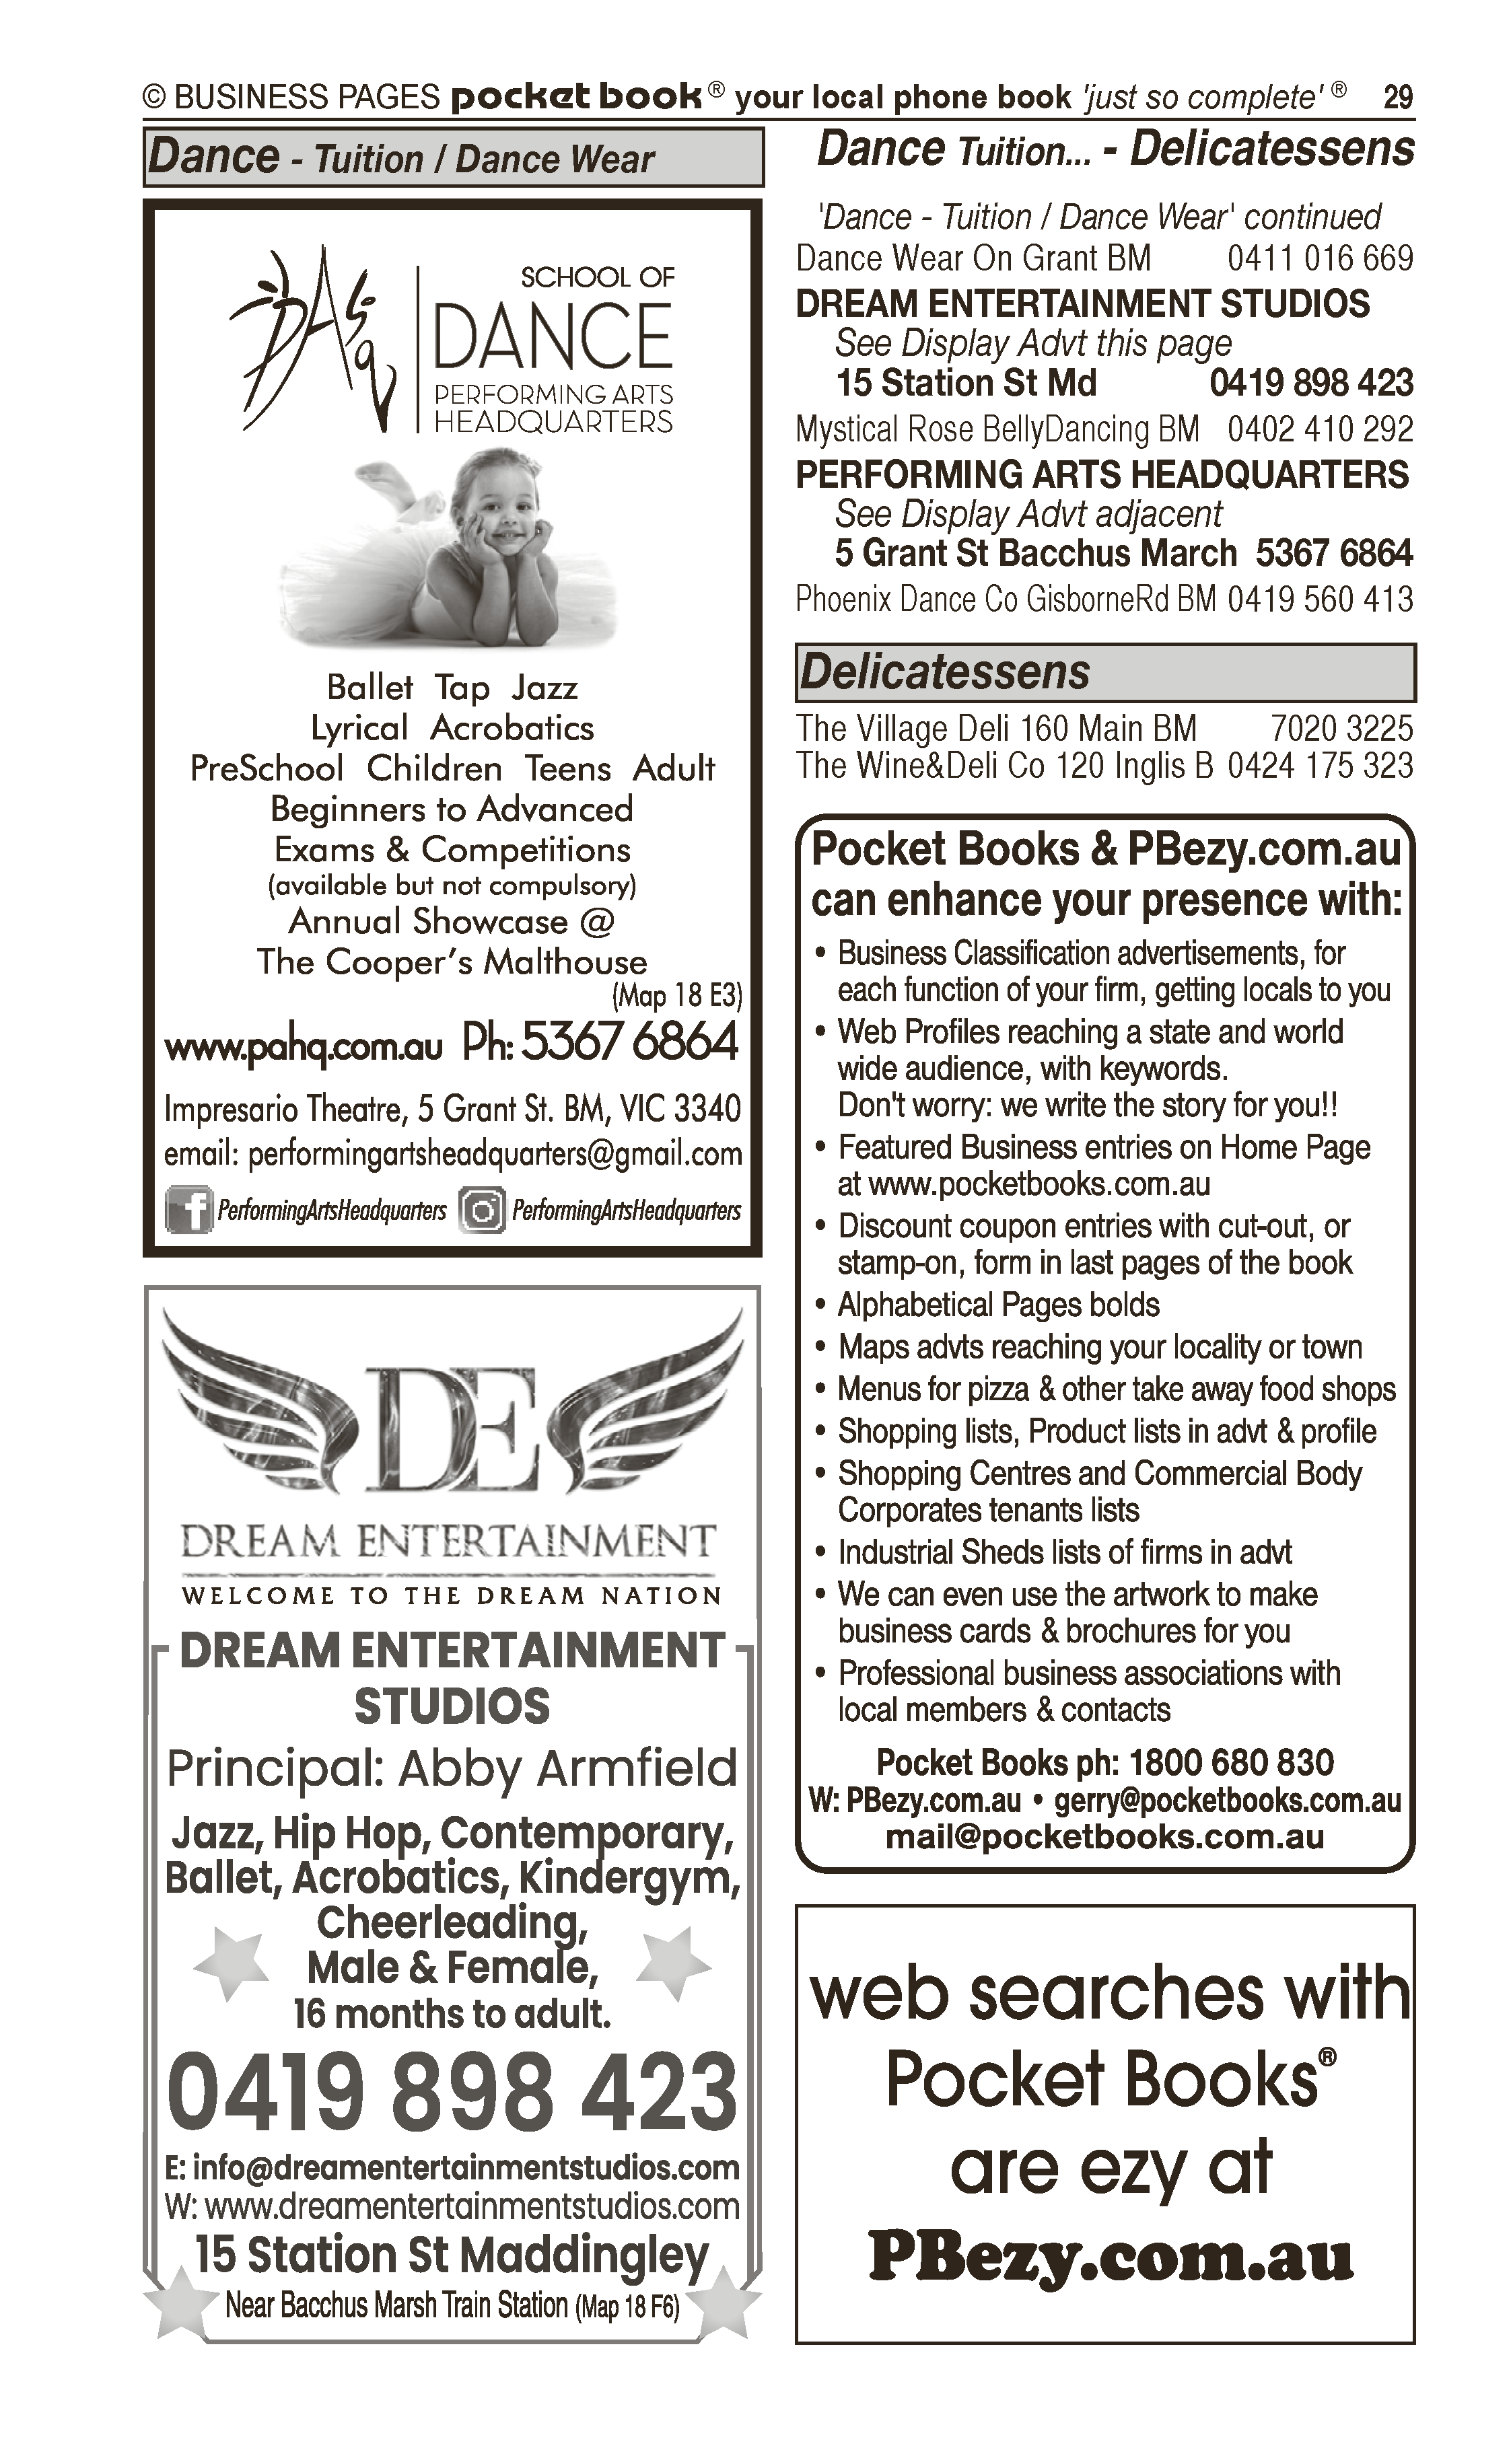 Catholic Presbytery & Saint Bernard's Church | Churches in Bacchus Marsh | PBezy Pocket Books local directories - page 29